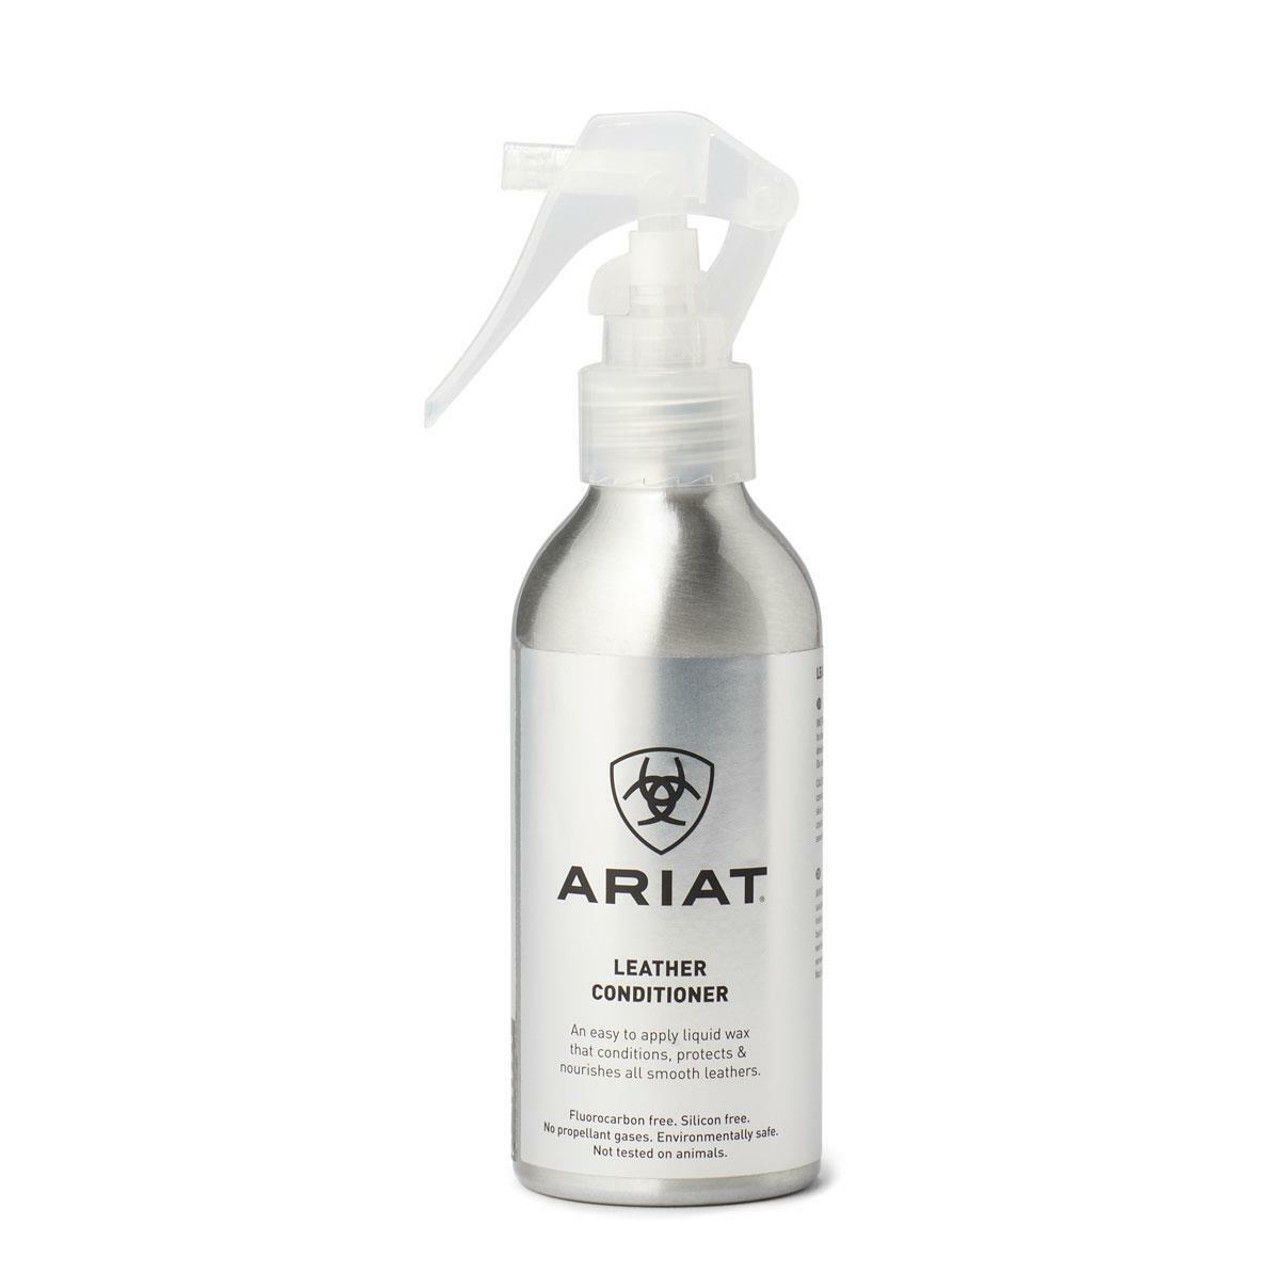 Ariat Leather Conditioner